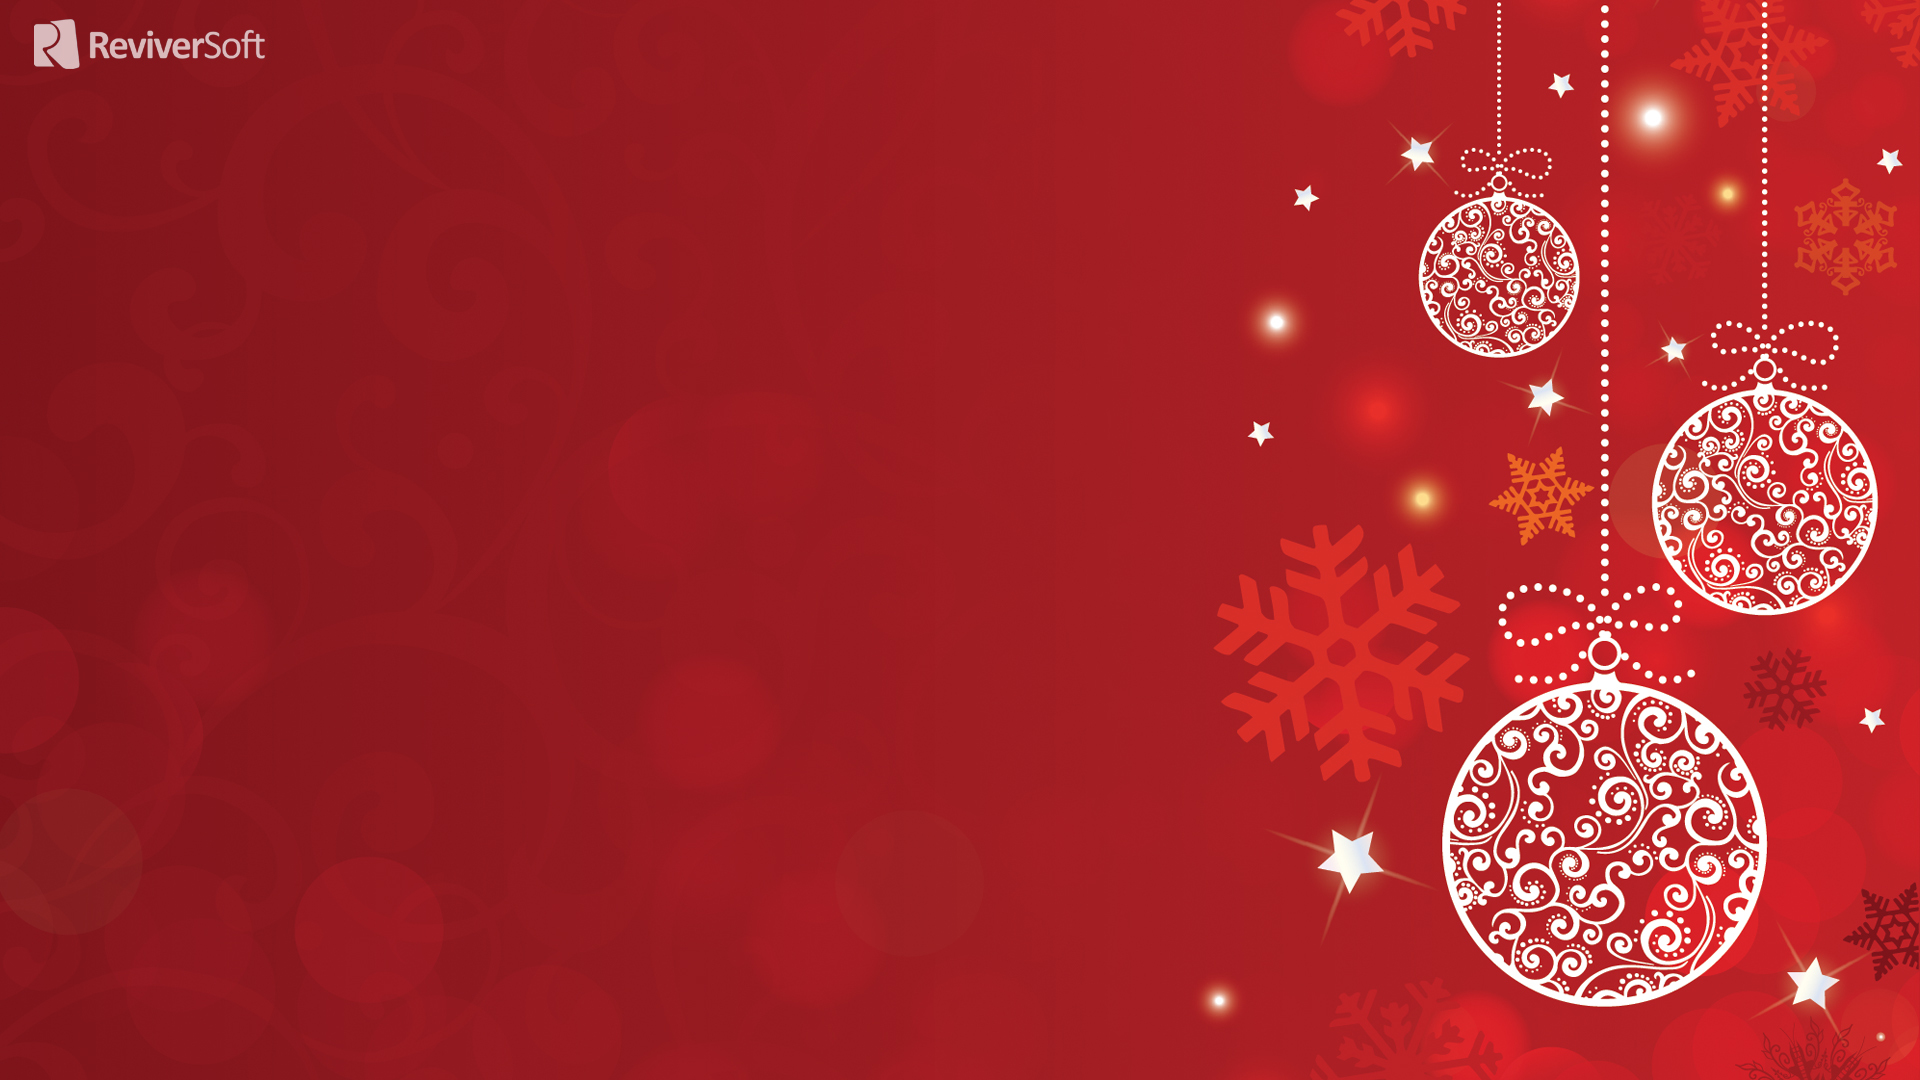 White Christmas decorations on a red background on Christmas 1920x1080